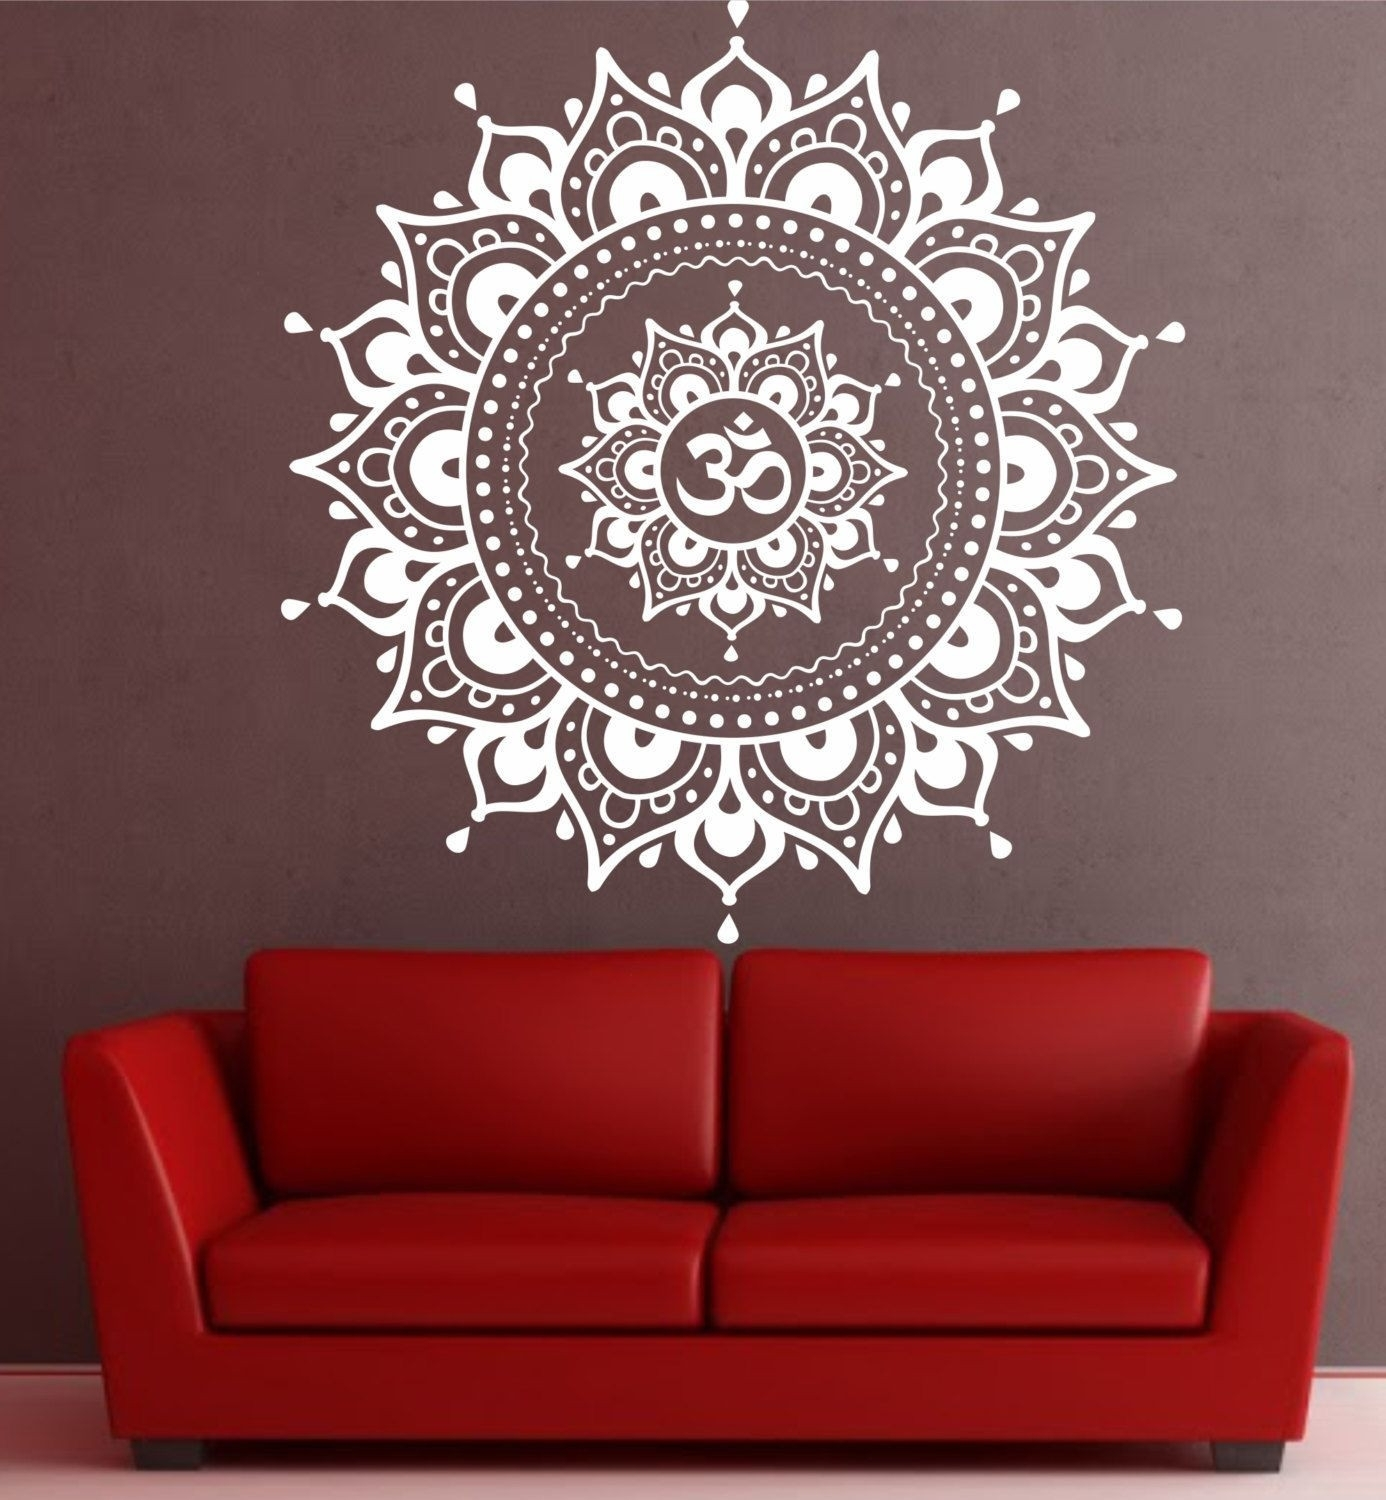 Mandala Wall Decal Mandala Decal Yoga Om Namaste Yoga Decor Wall Inside Most Popular Mandala Wall Art (View 17 of 20)